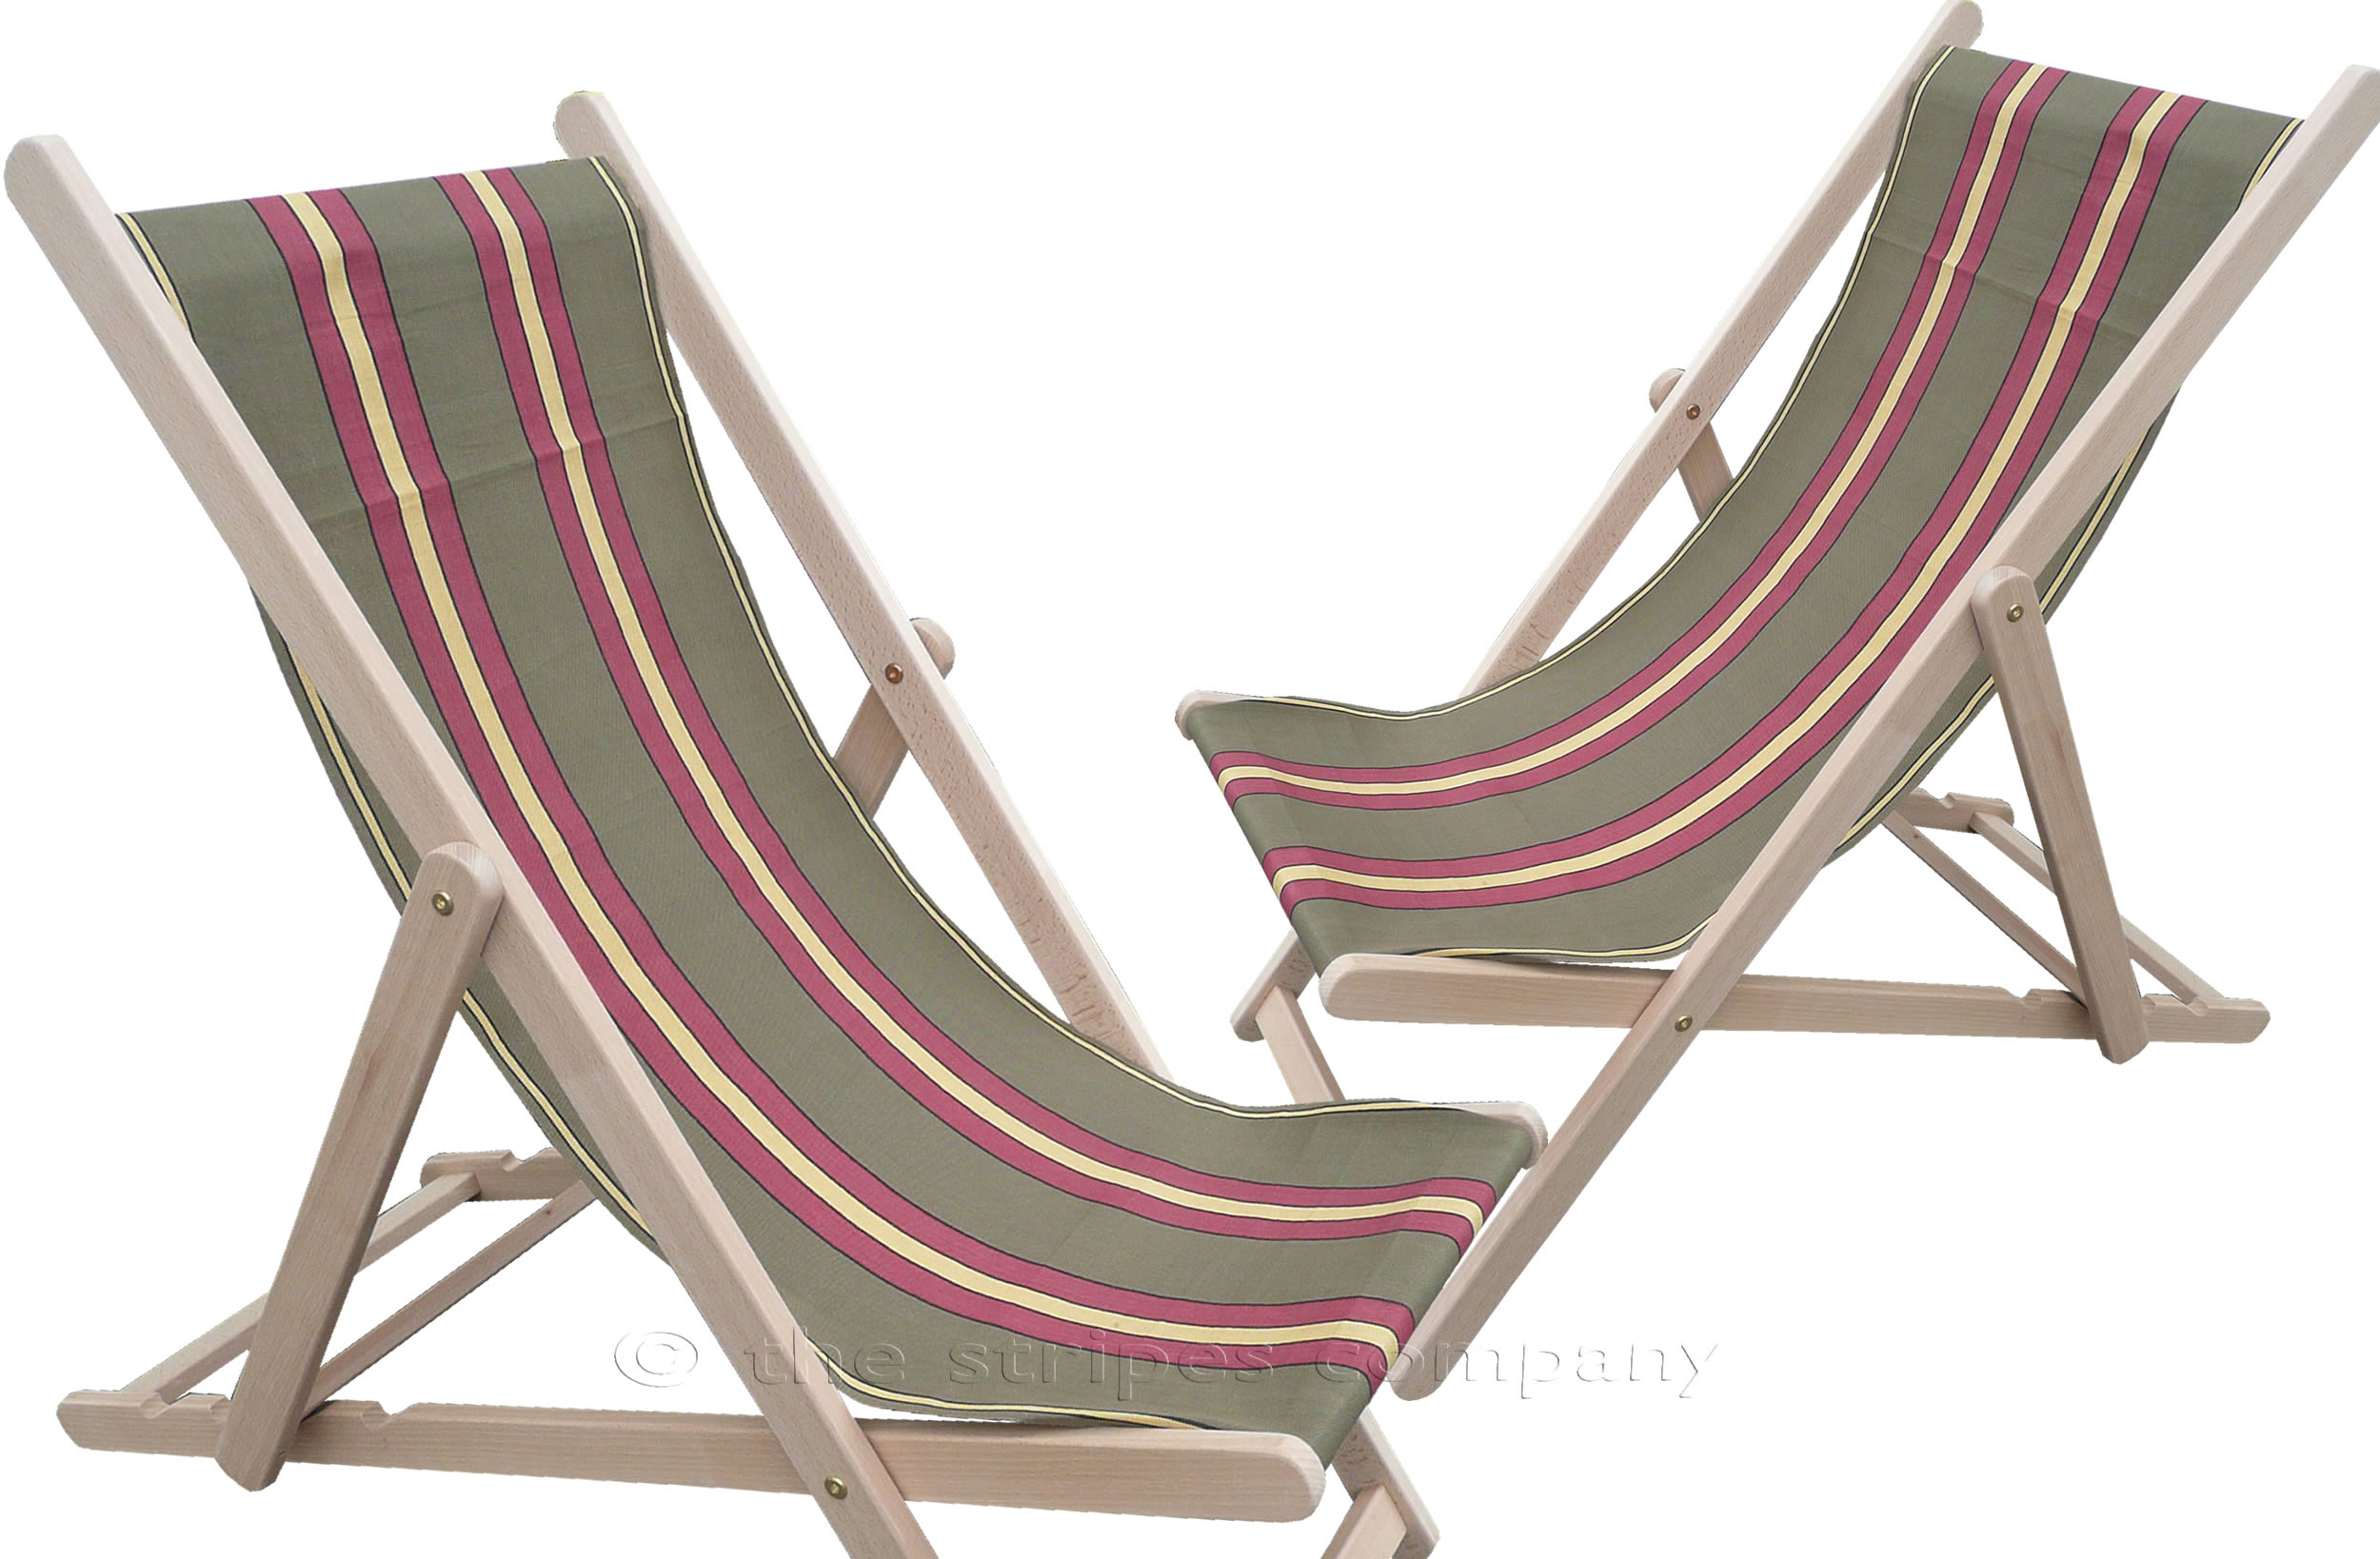 Khaki Deckchairs | Wooden Folding Deck Chairs Kung Fu Stripes